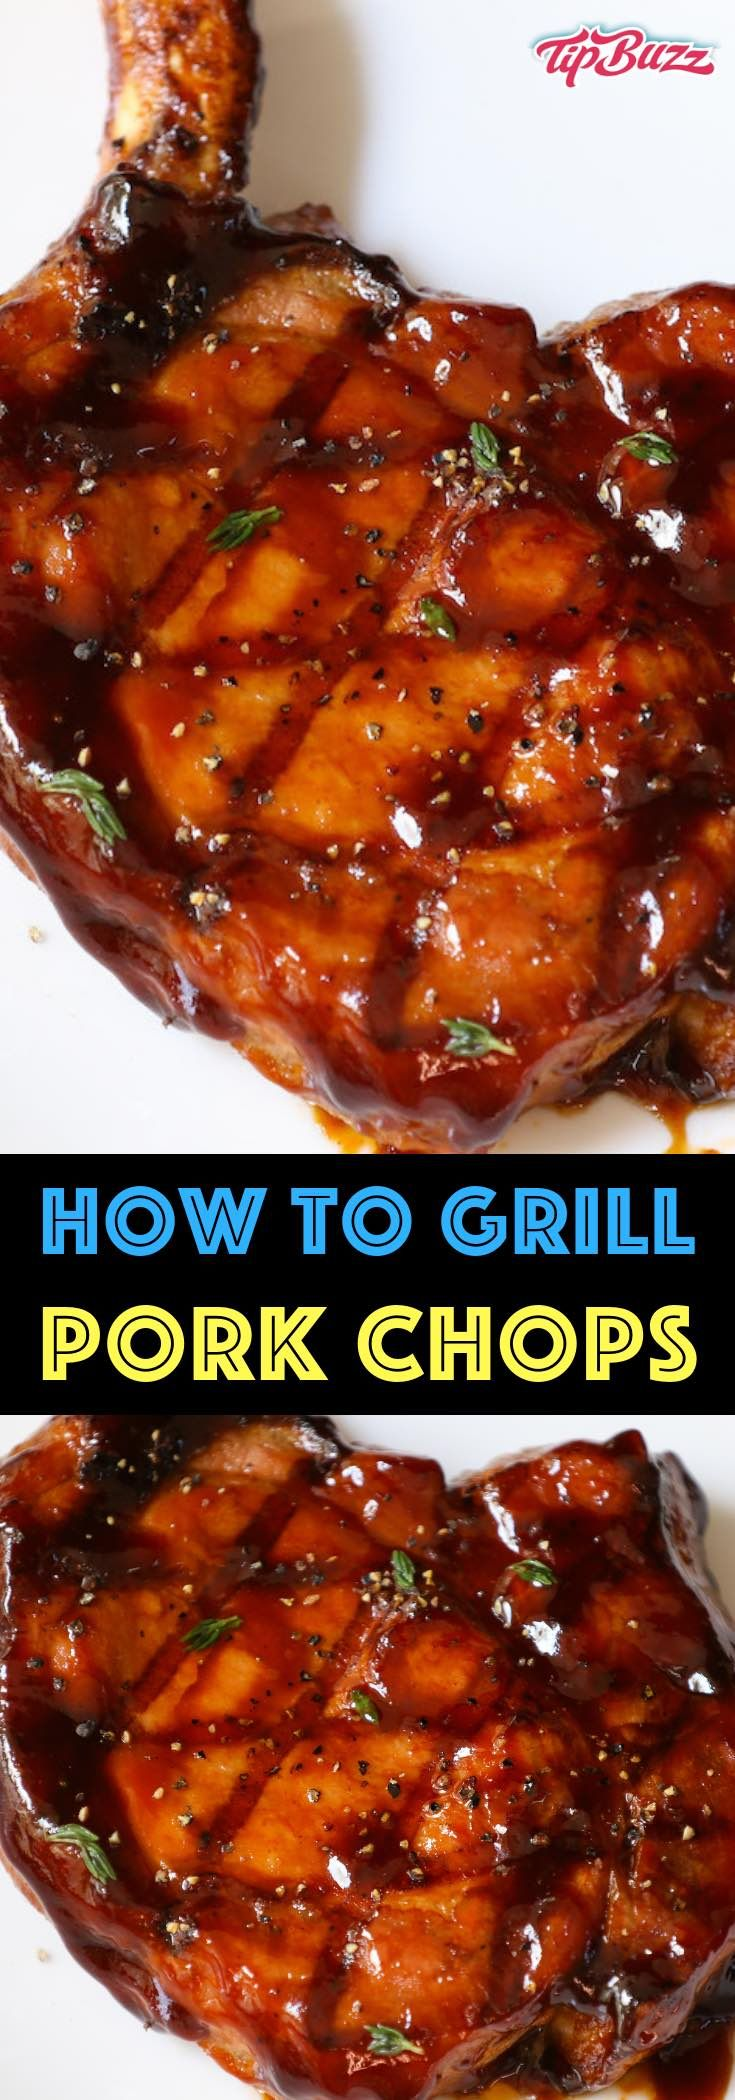 How Long to Grill Pork Chops - TipBuzz